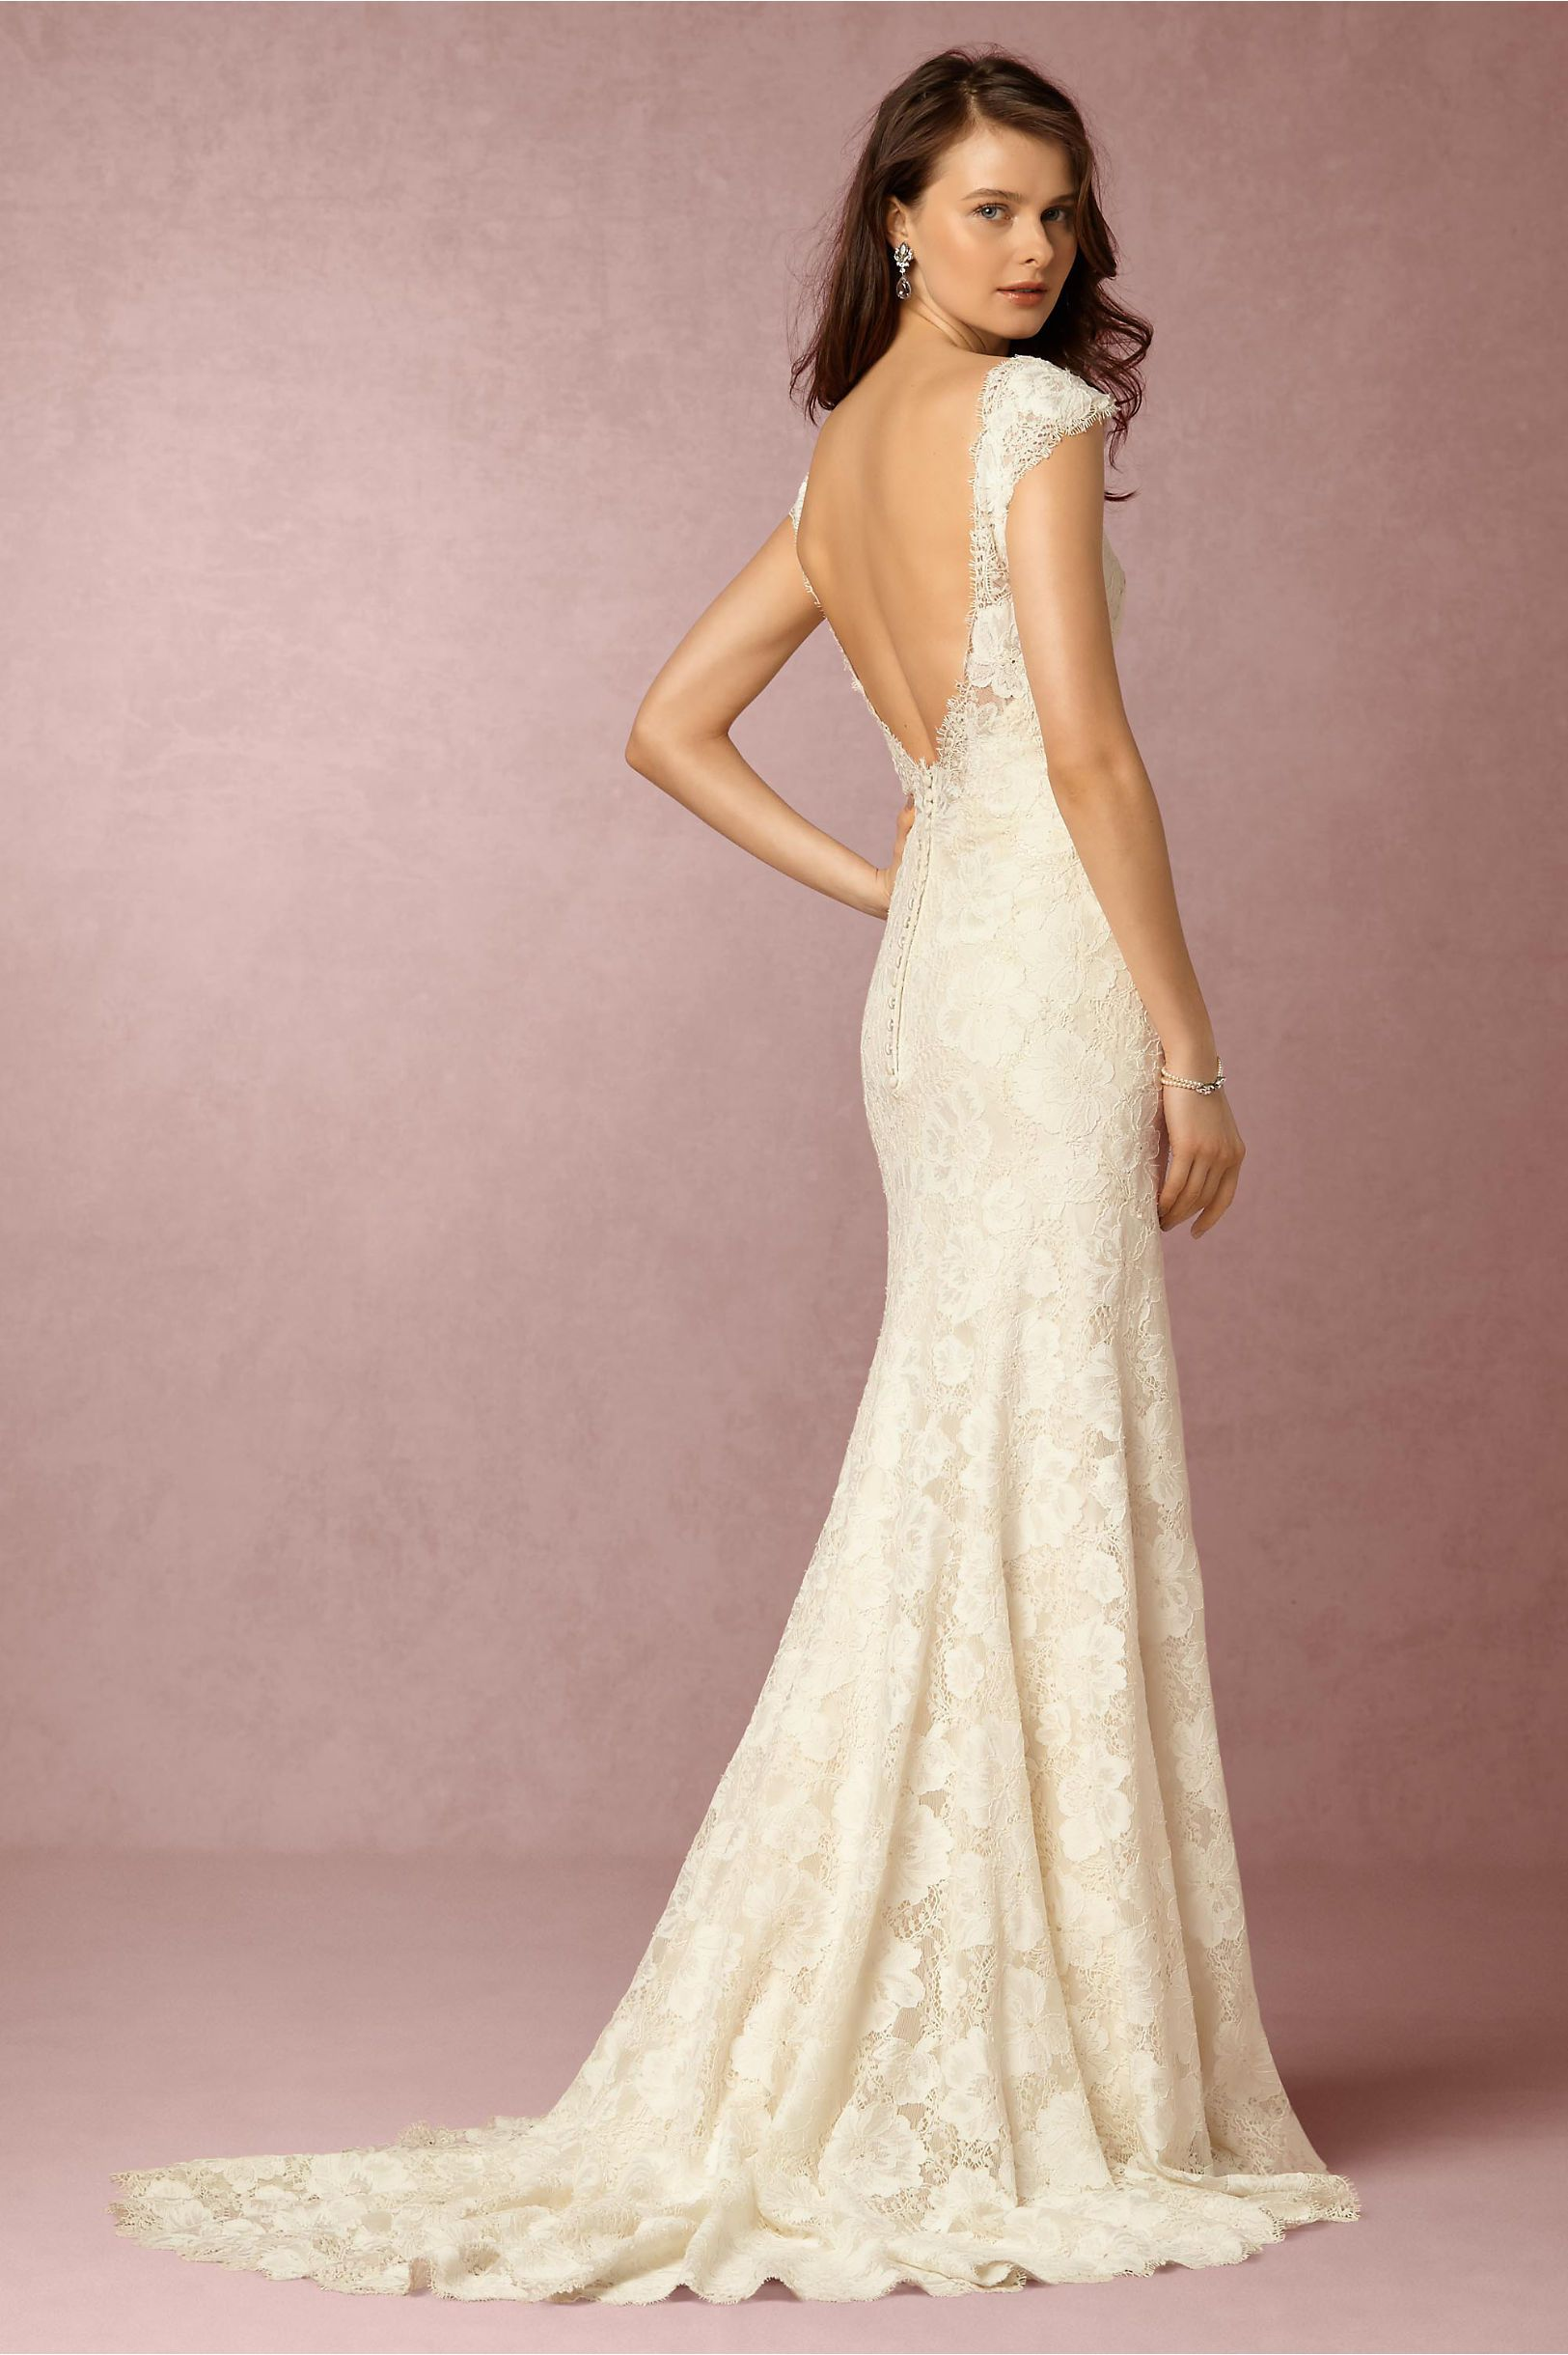 BHLDN Amalia Gown in Bride Wedding Dresses Lace at BHLDN | Knot ...